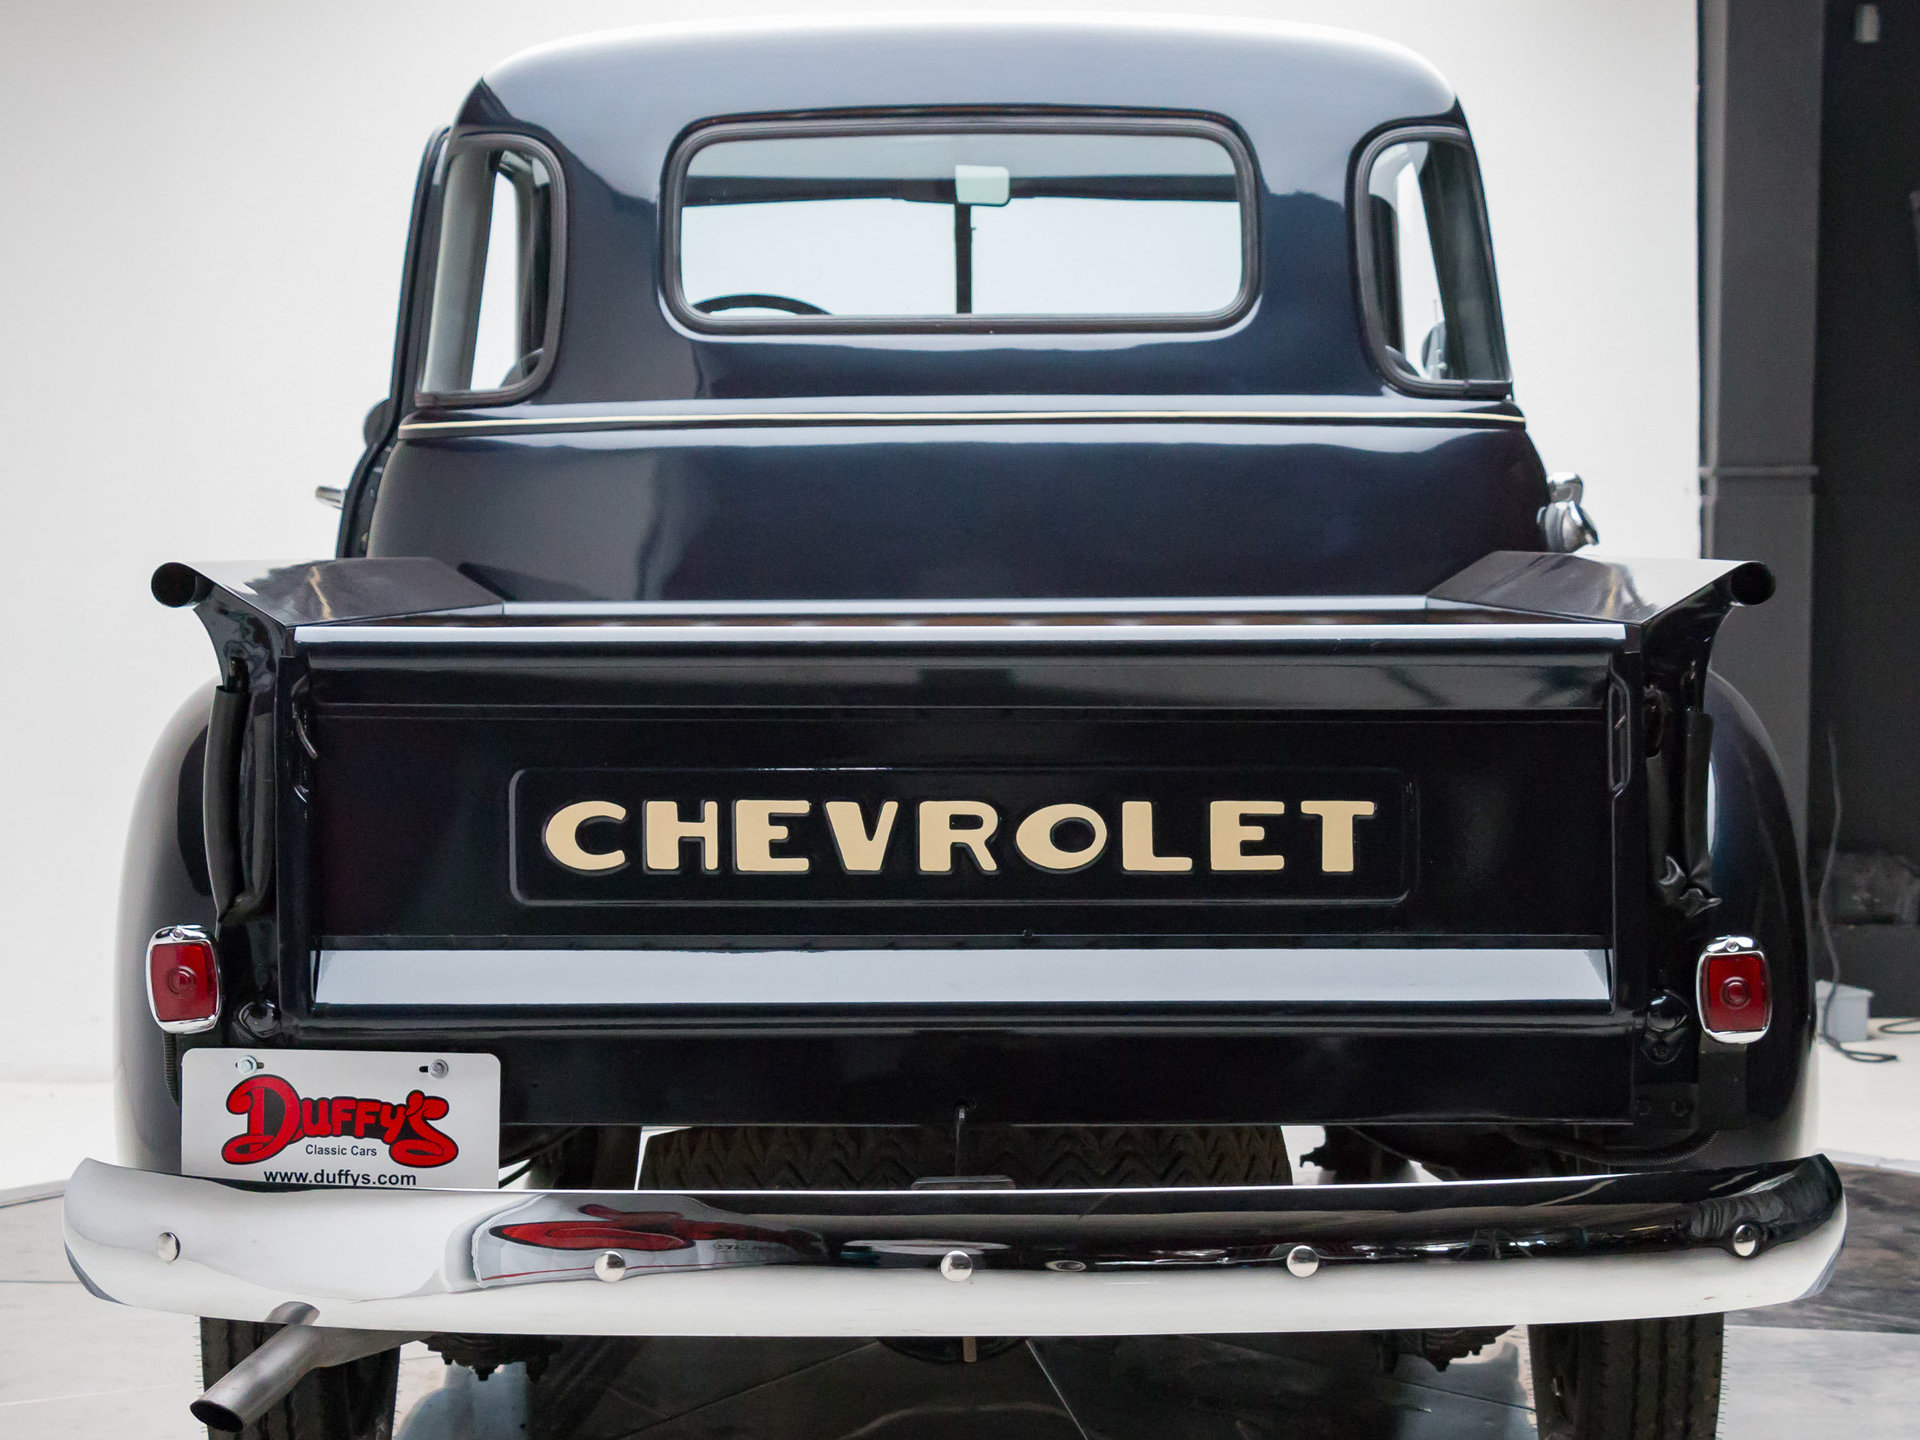 1949 Chevrolet 3100 Duffys Classic Cars Chevy Pickup 5 Window For Sale